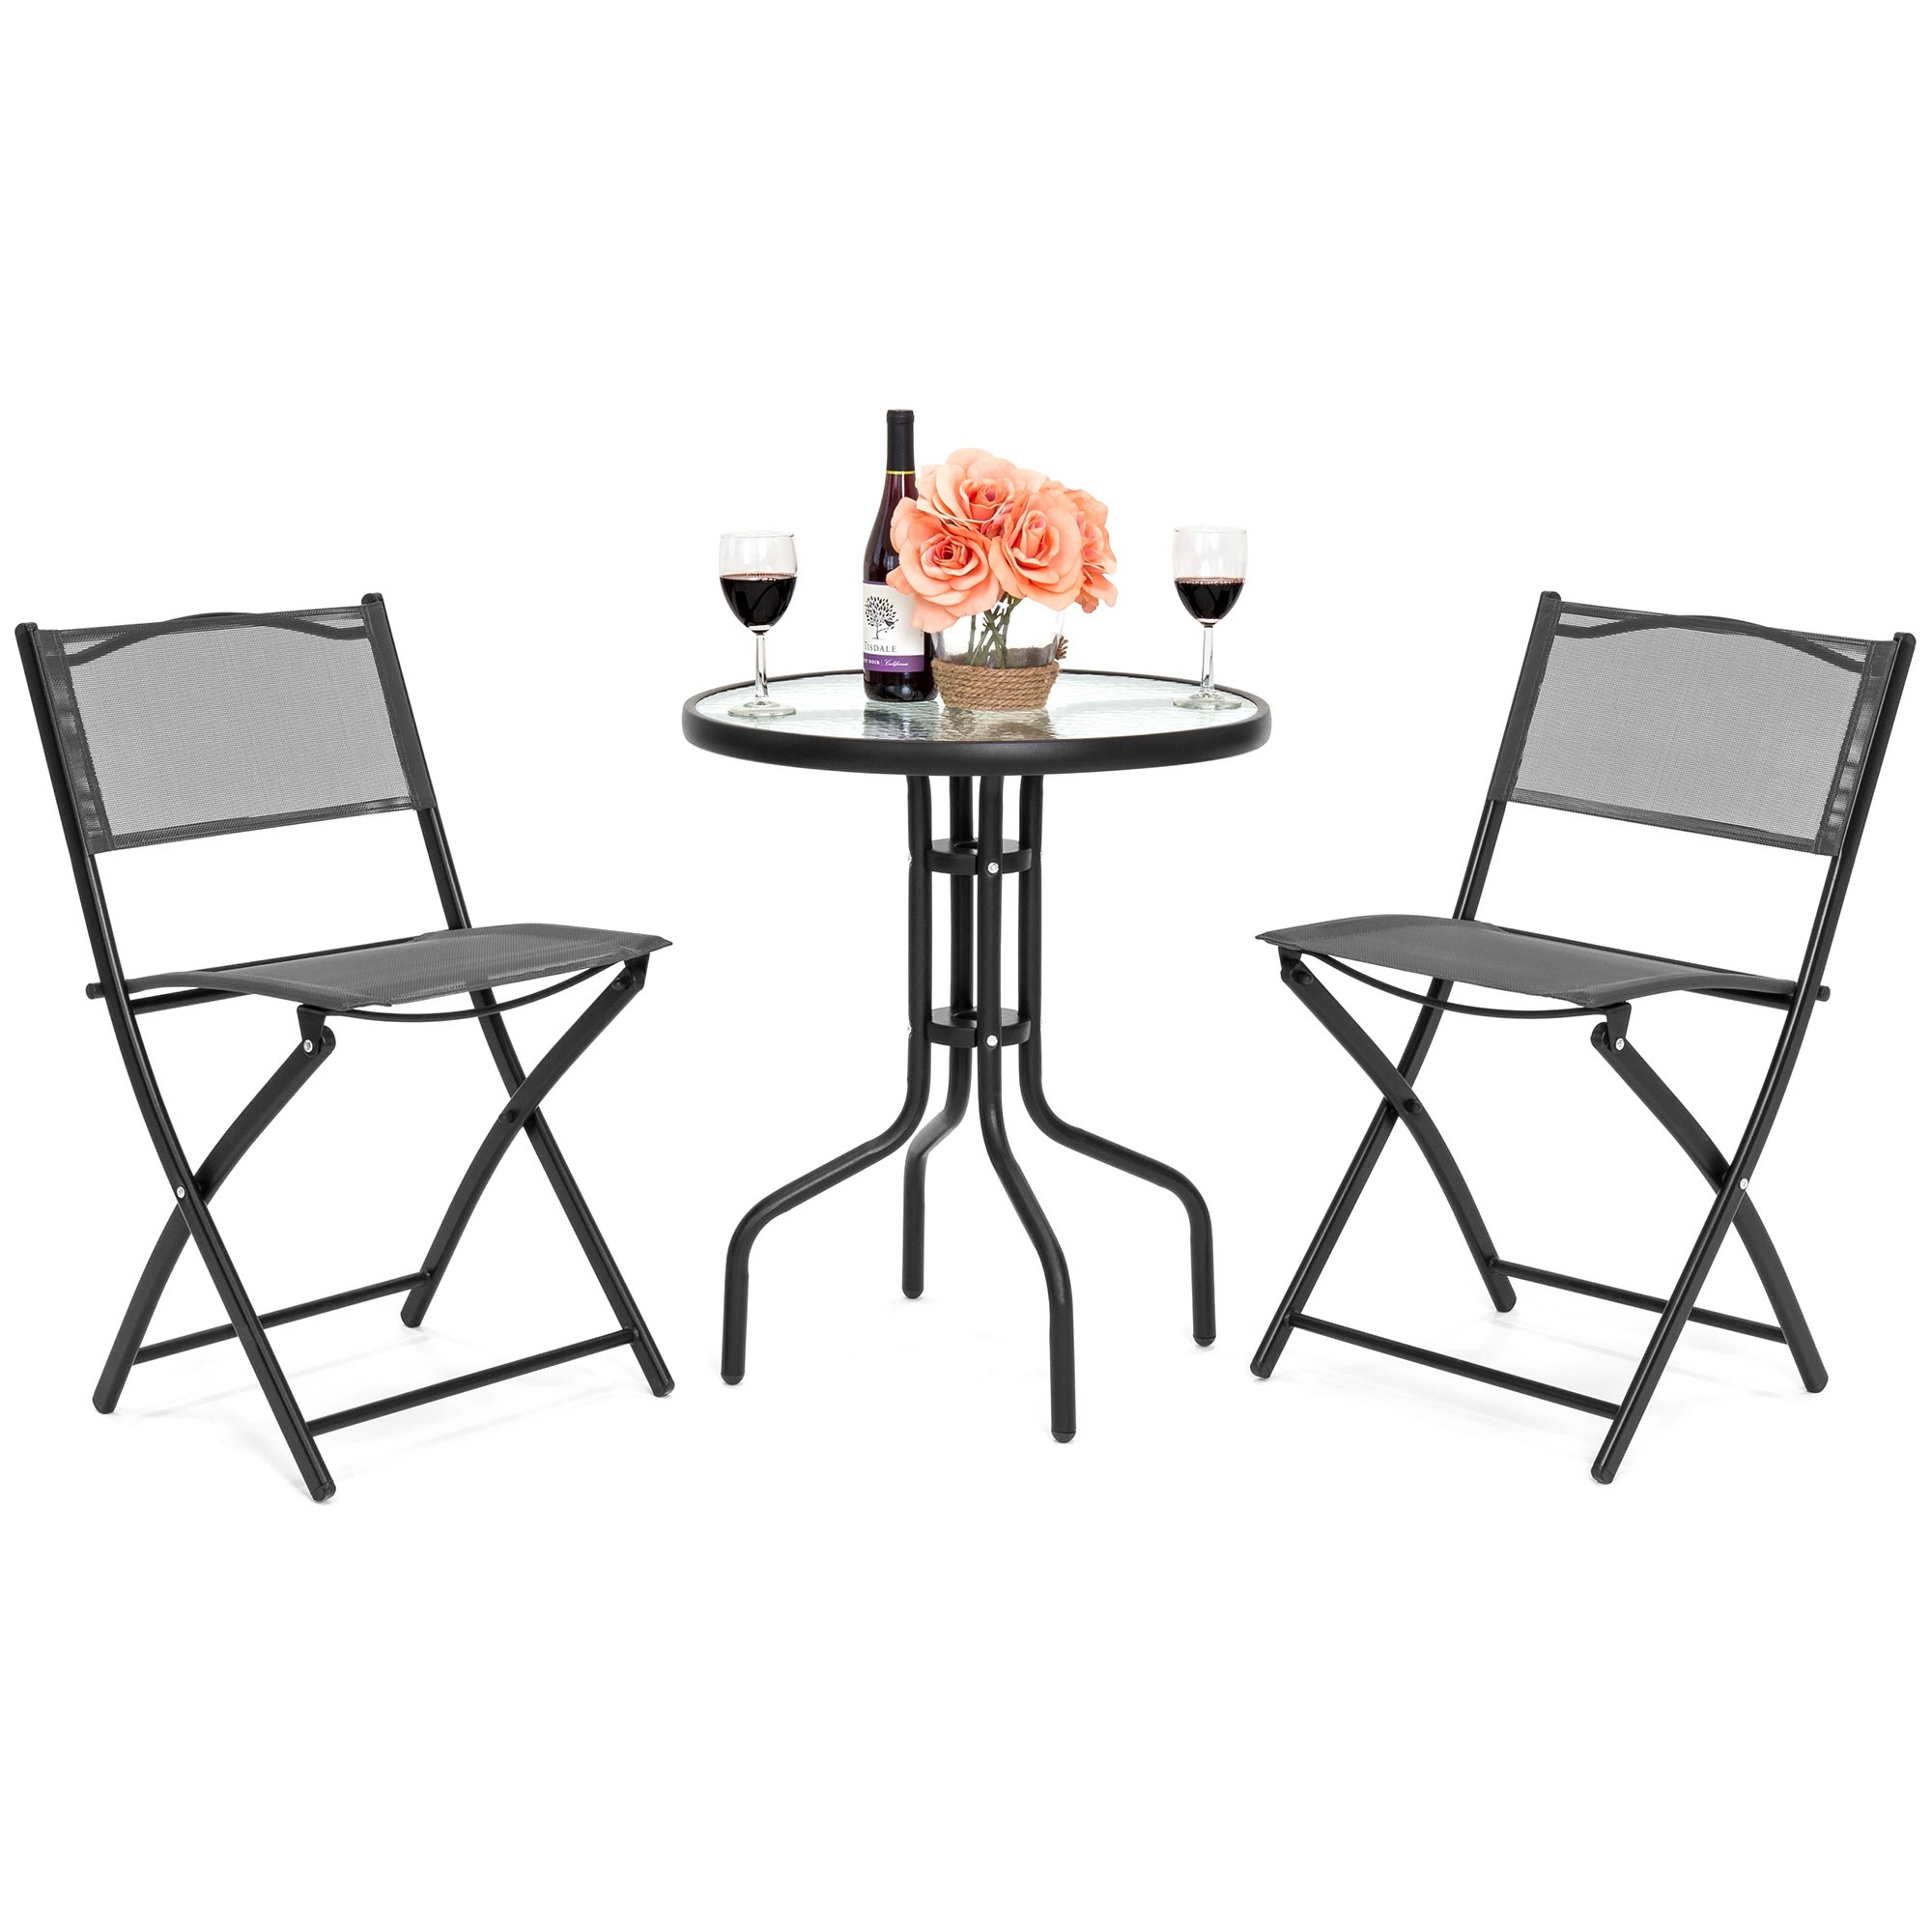 Best Choice Products 3-Piece Patio Bistro Dining Furniture